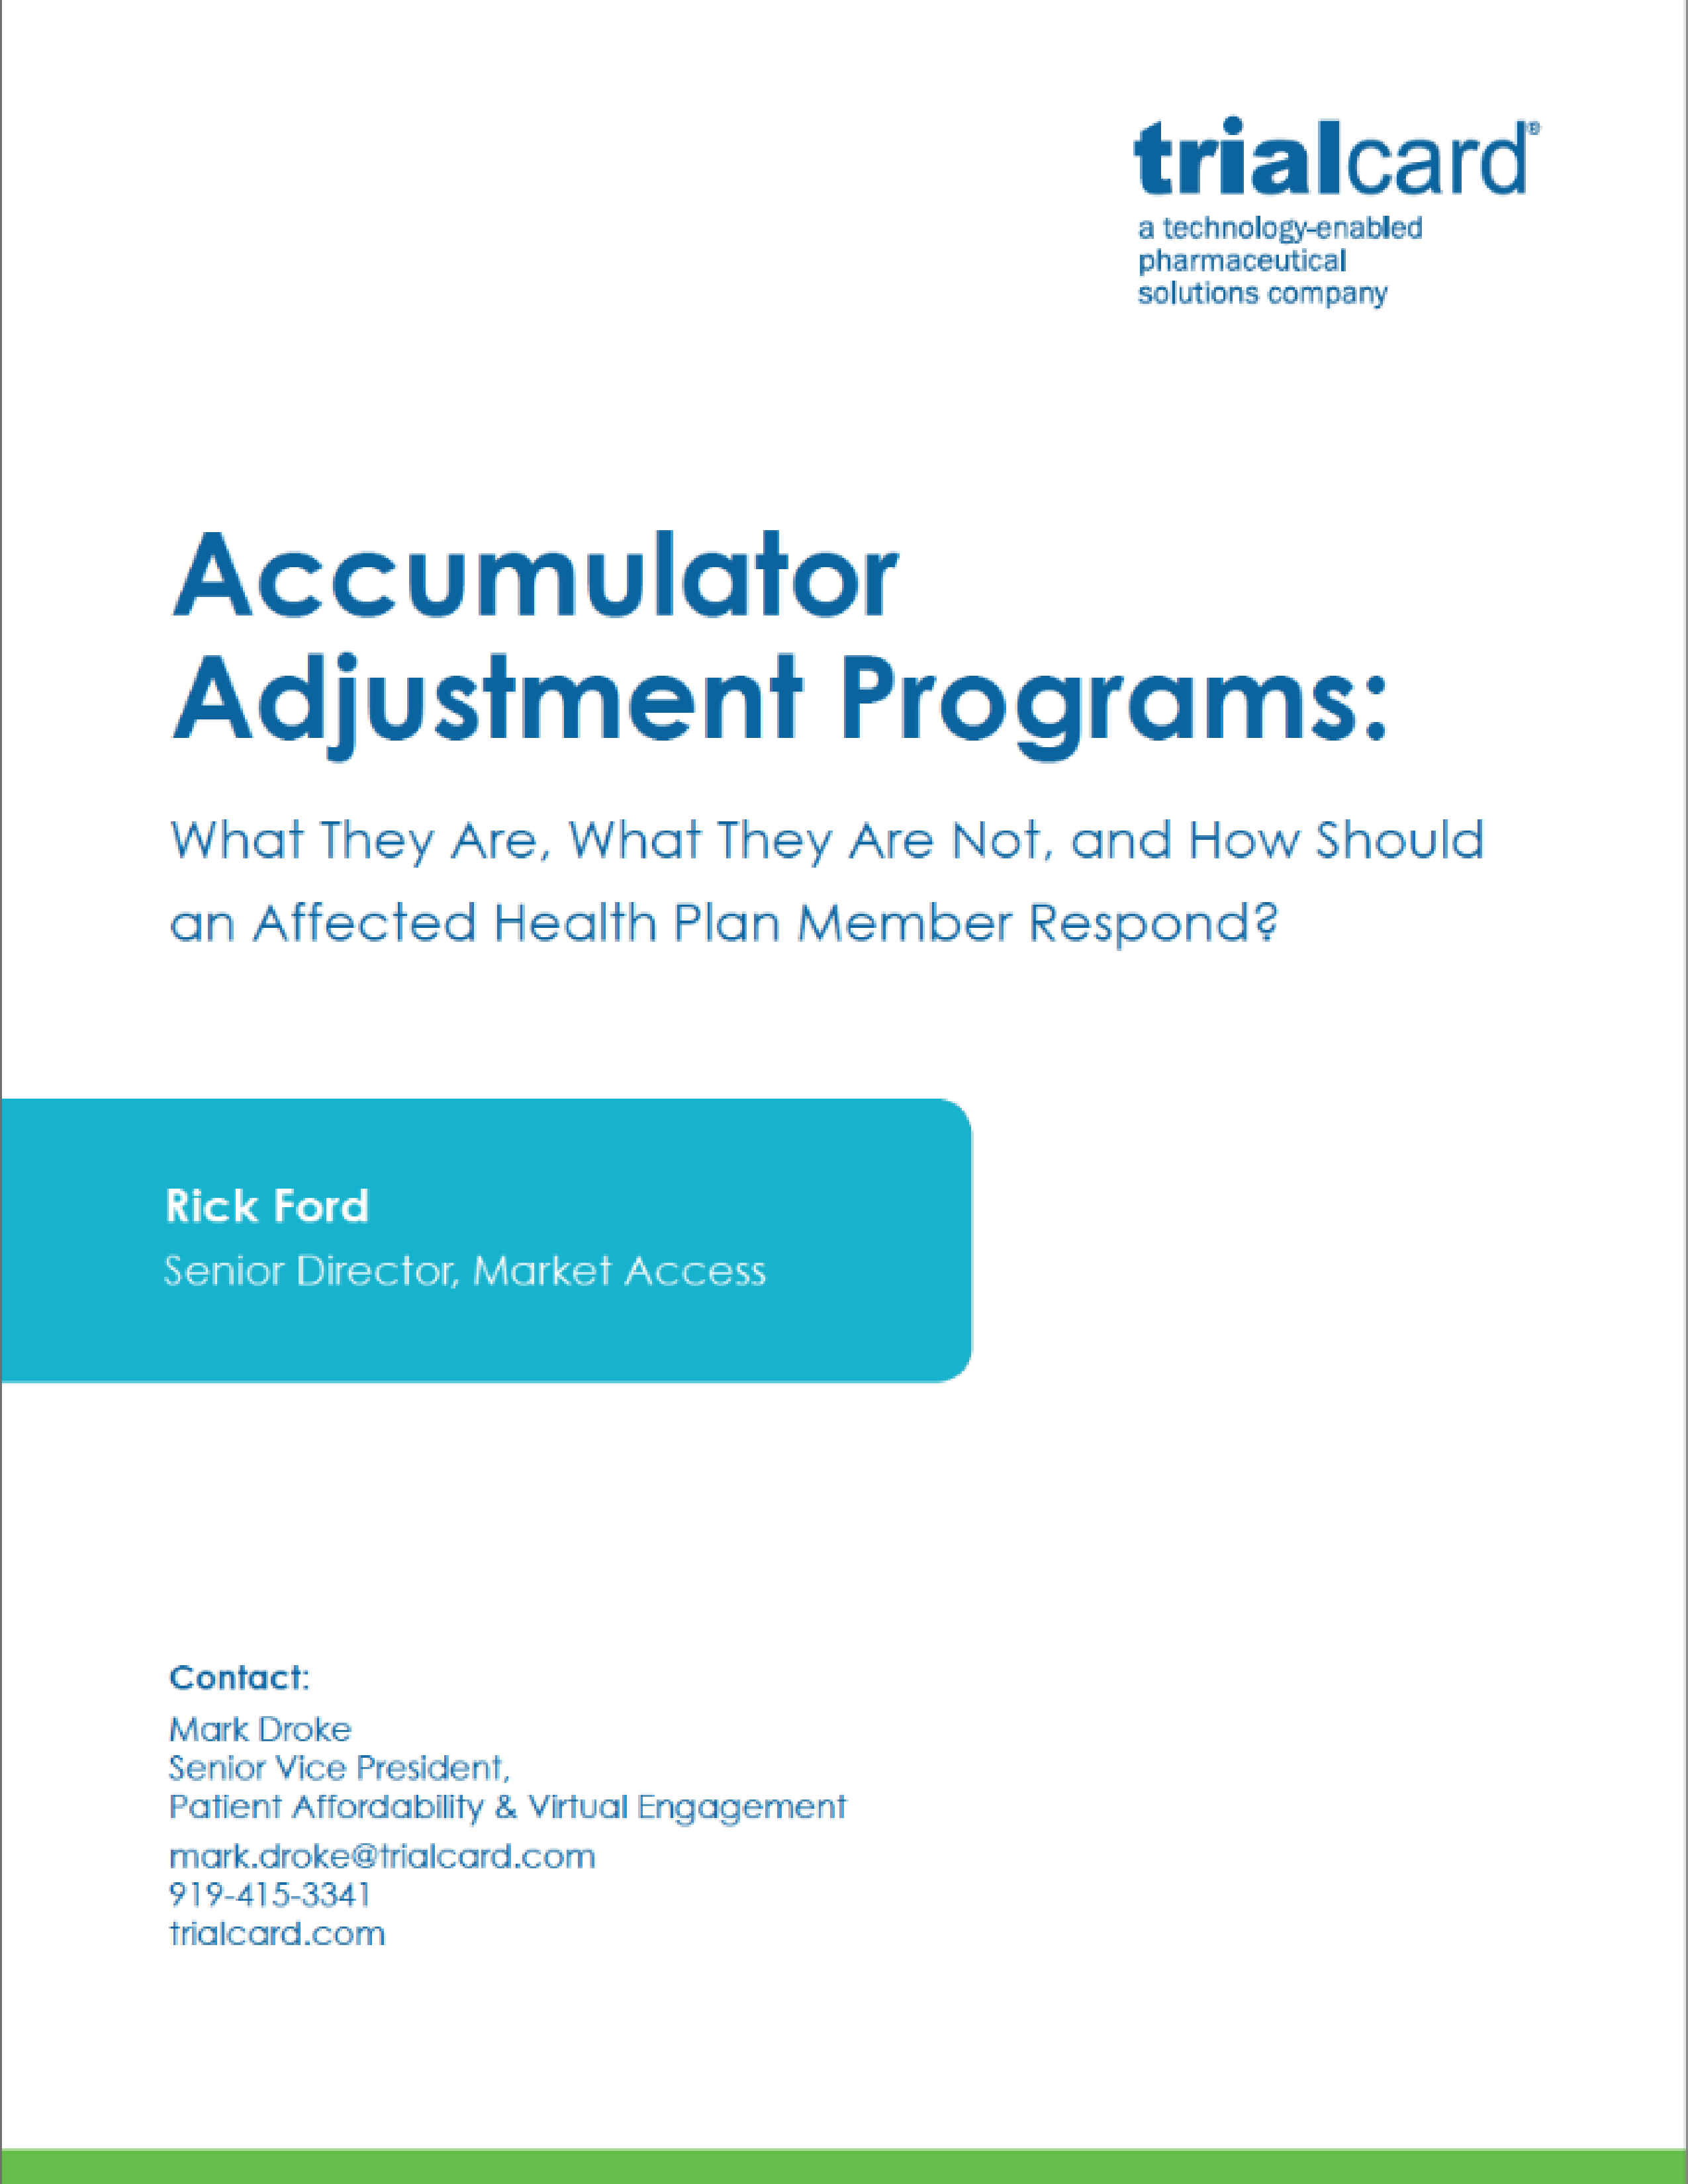 Accumulator Adjustment Programs: What They Are, What They Are Not, and How Should an Affected Health Plan Member Respond?